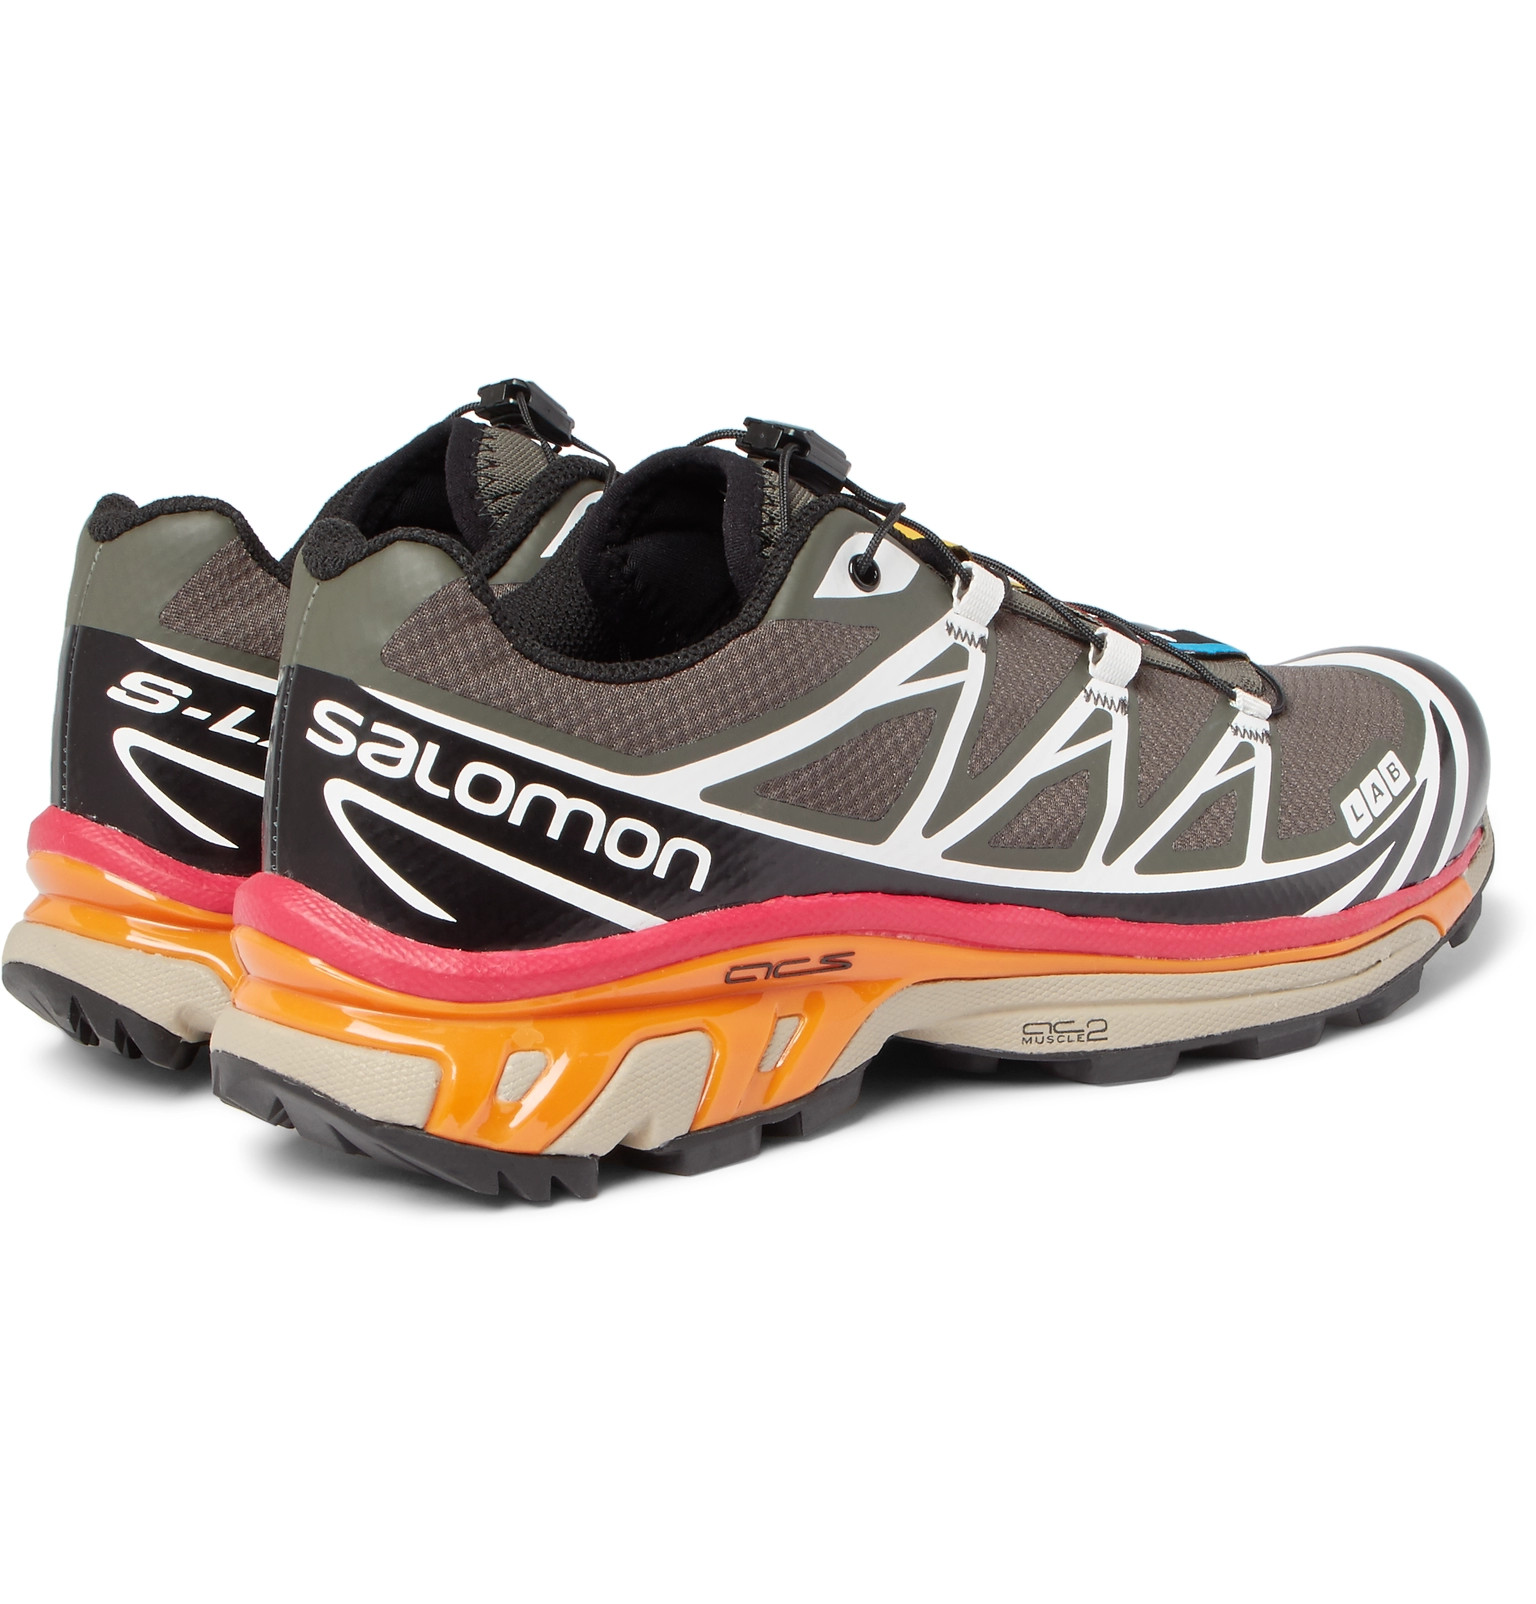 huge discount 3c444 9a5e5 ... cheap salomon s lab xt 6 softground mesh and rubber running sneakers  30a3a cdc1f